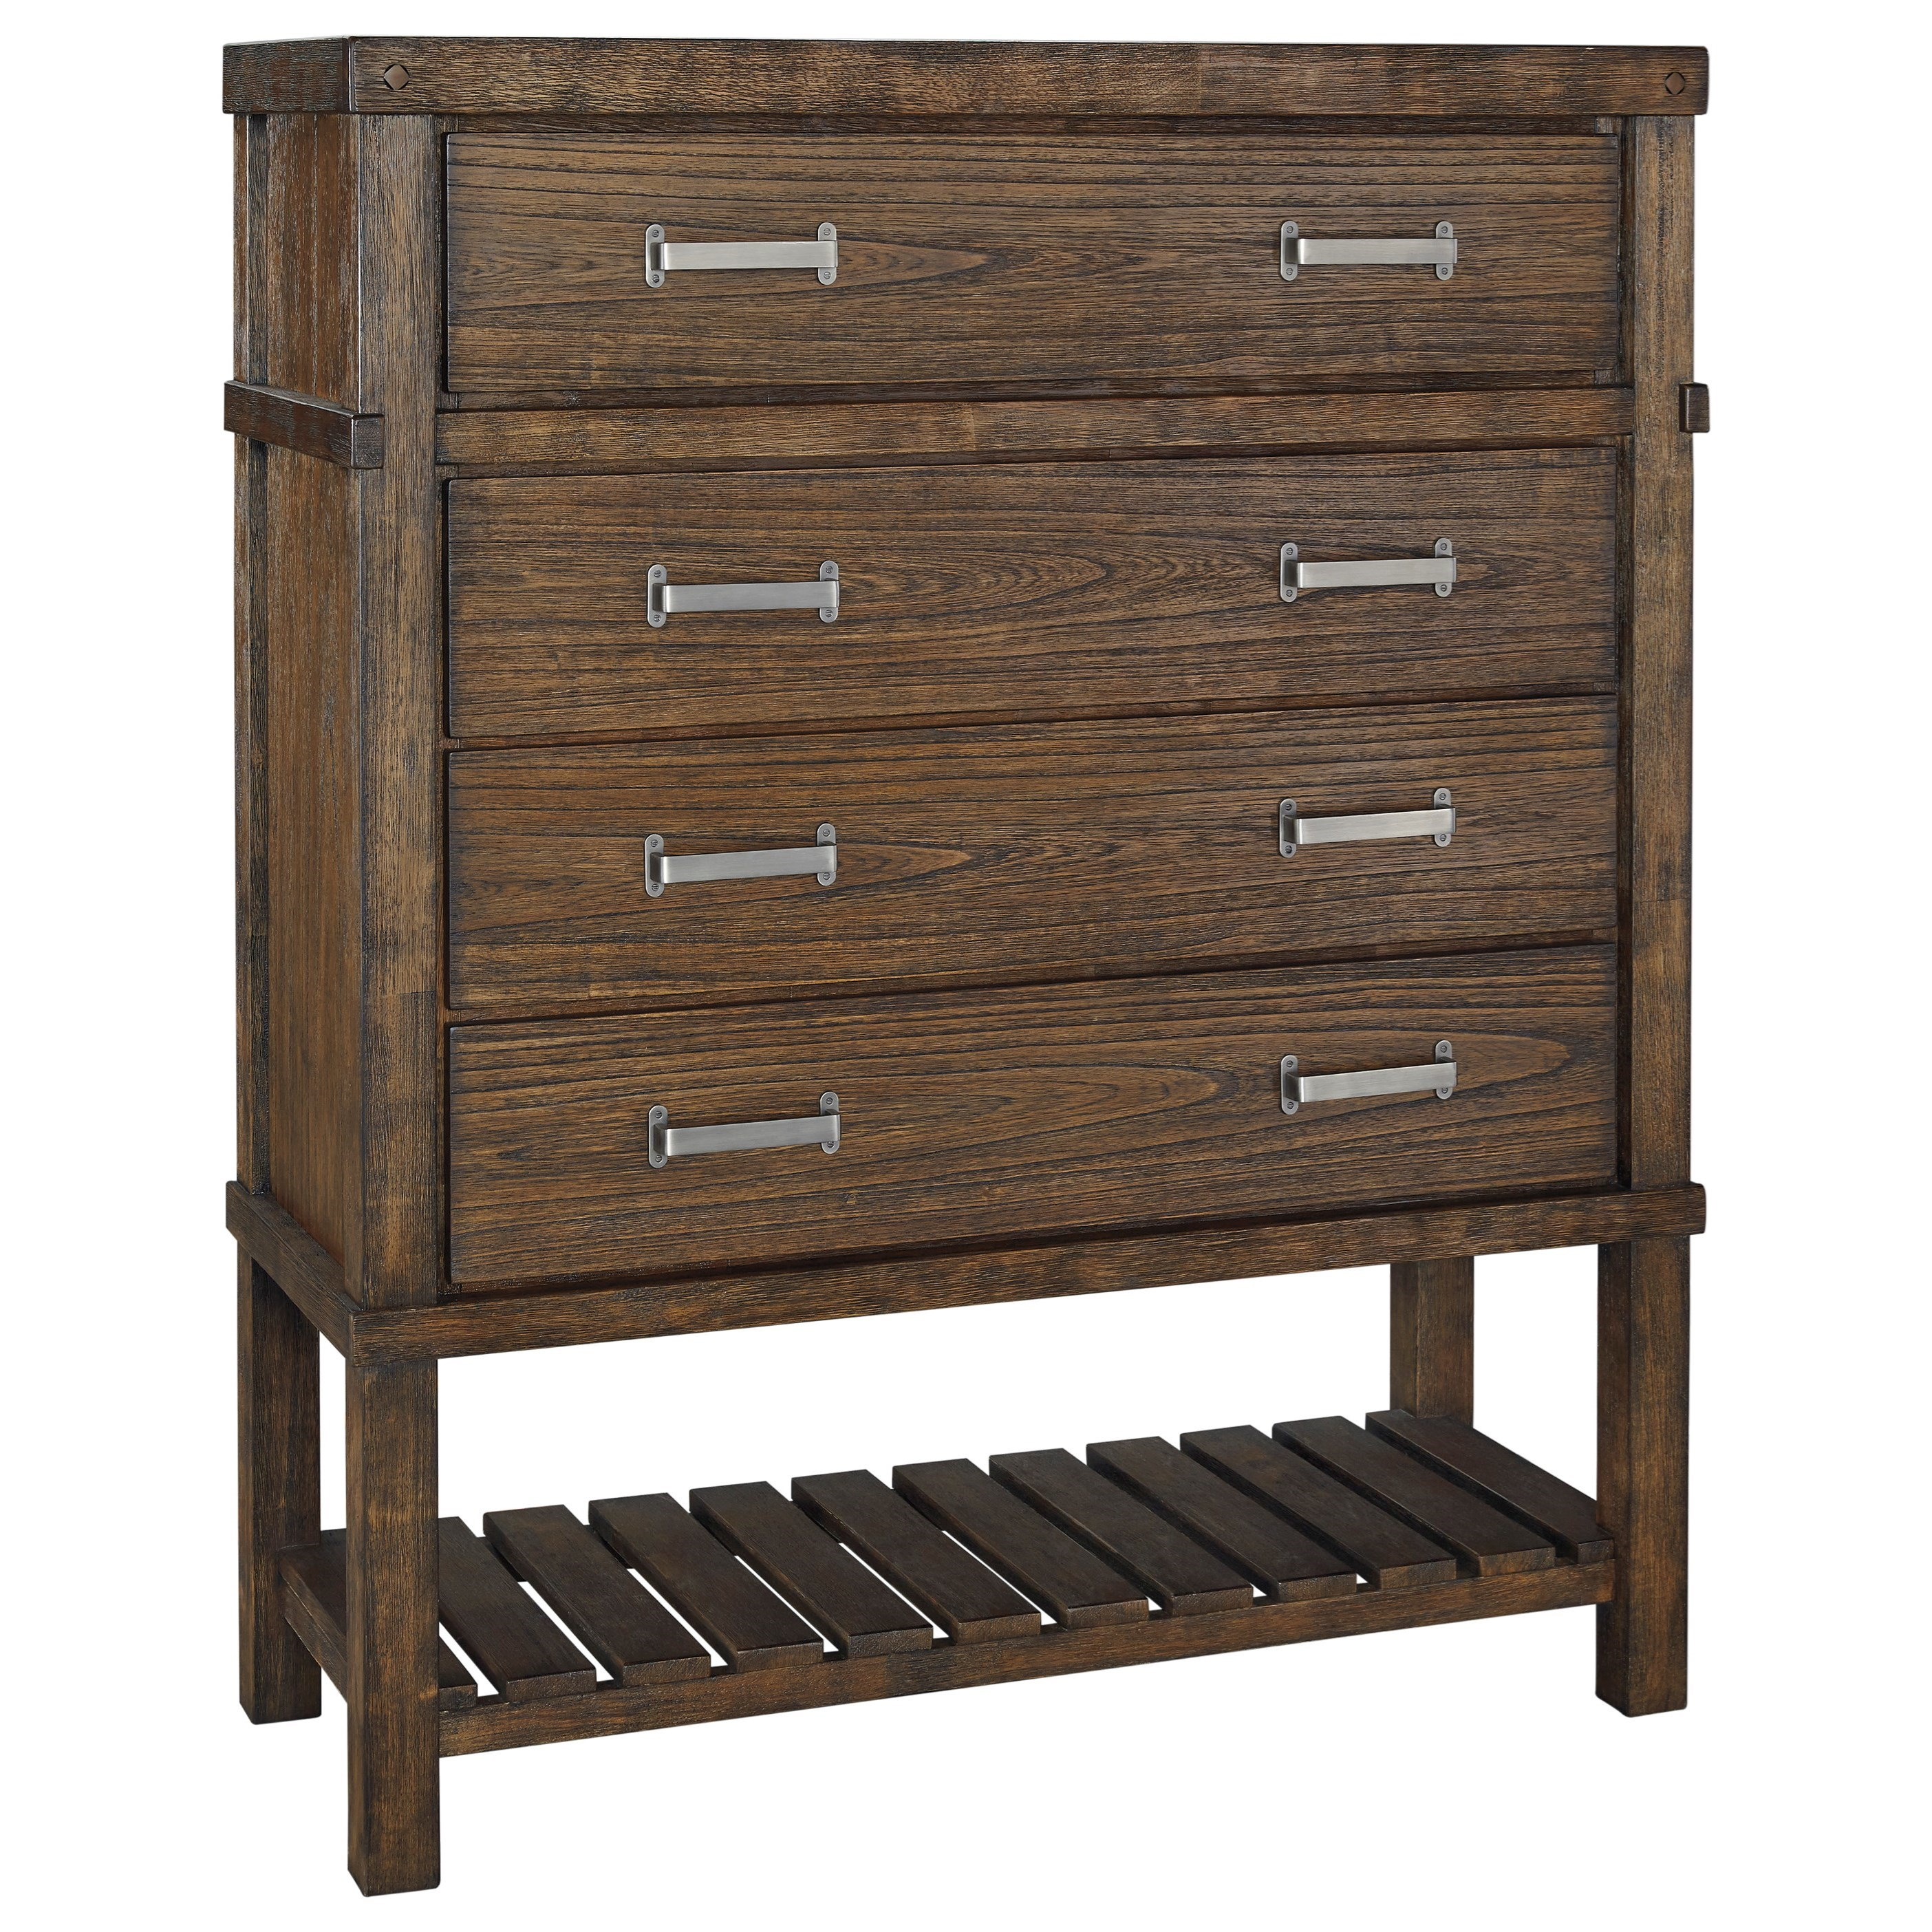 Signature Design by Ashley Leystone Chest of Drawers - Item Number: B614-46